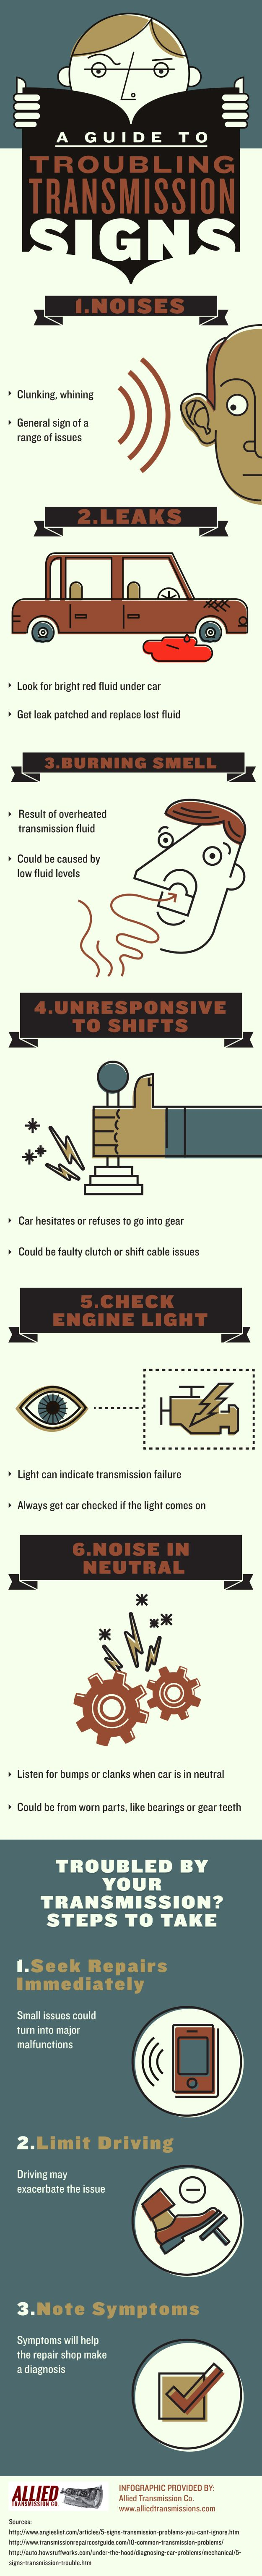 Did you know that your check engine light can indicate transmission failure? That is why you should always get your car checked when the light comes on. Get more tips by looking over this infographic from a transmission repair shop in San Jose.